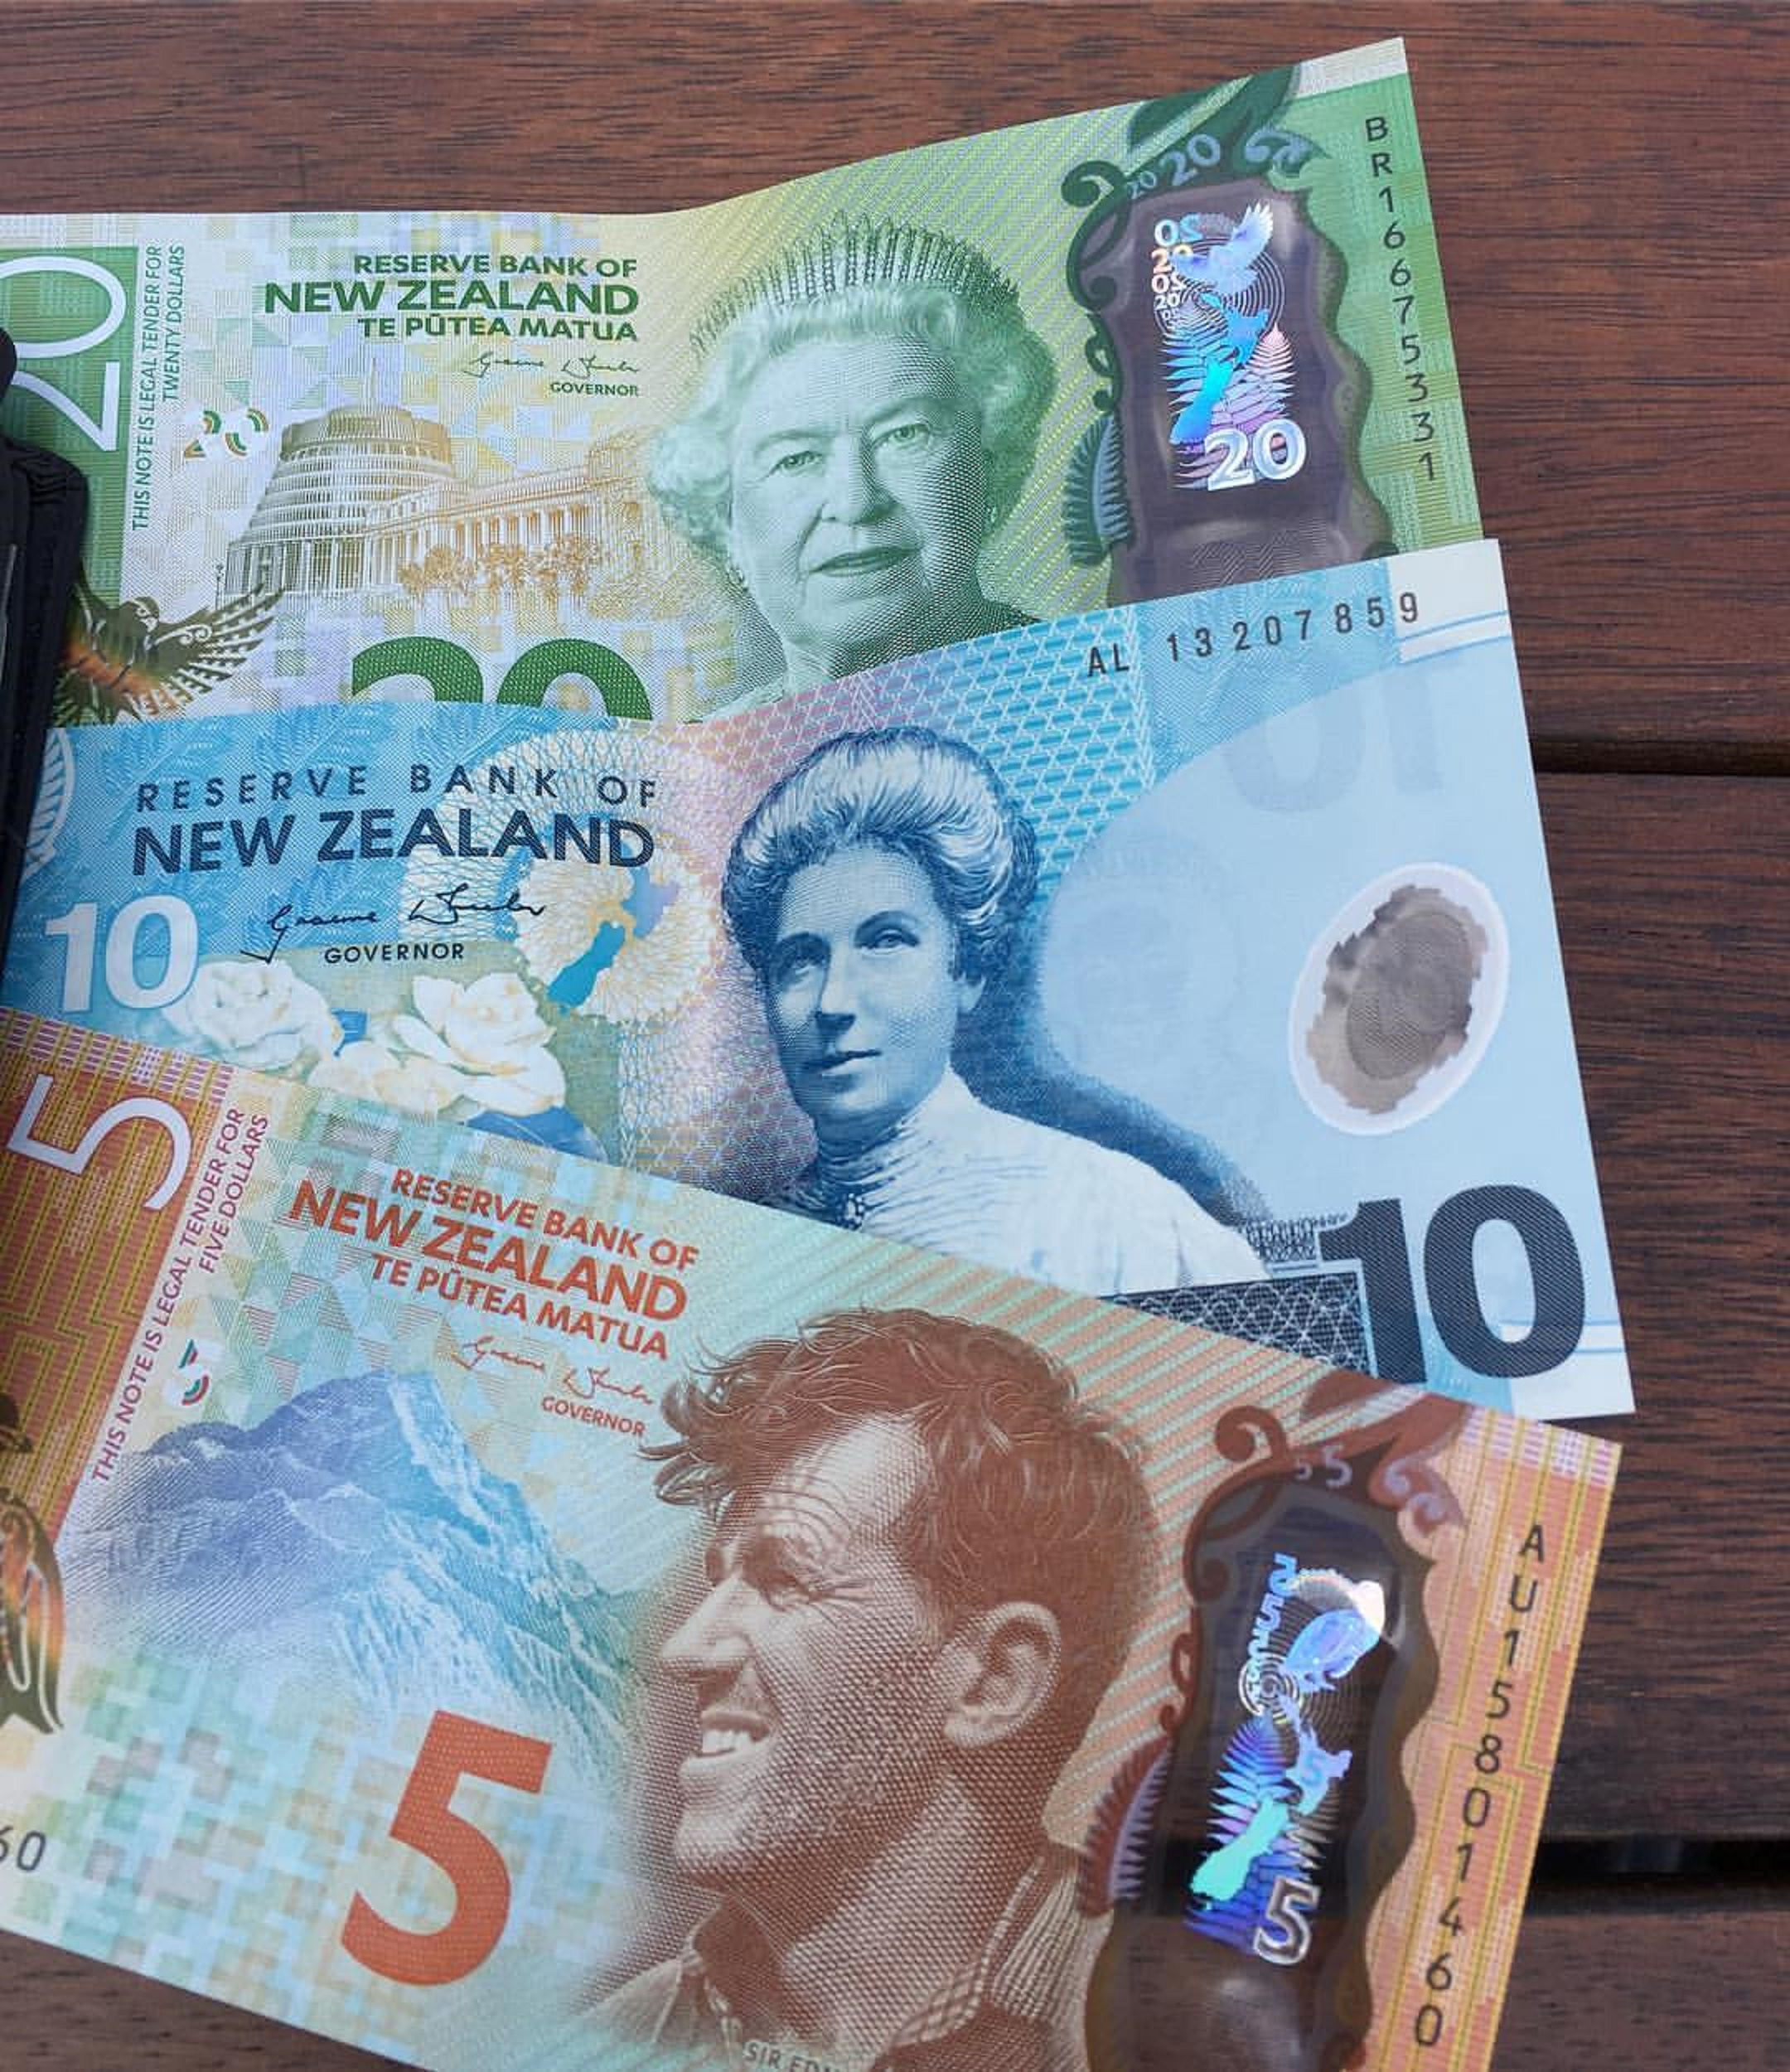 Where Can I Buy Fake New Zealand Dollar